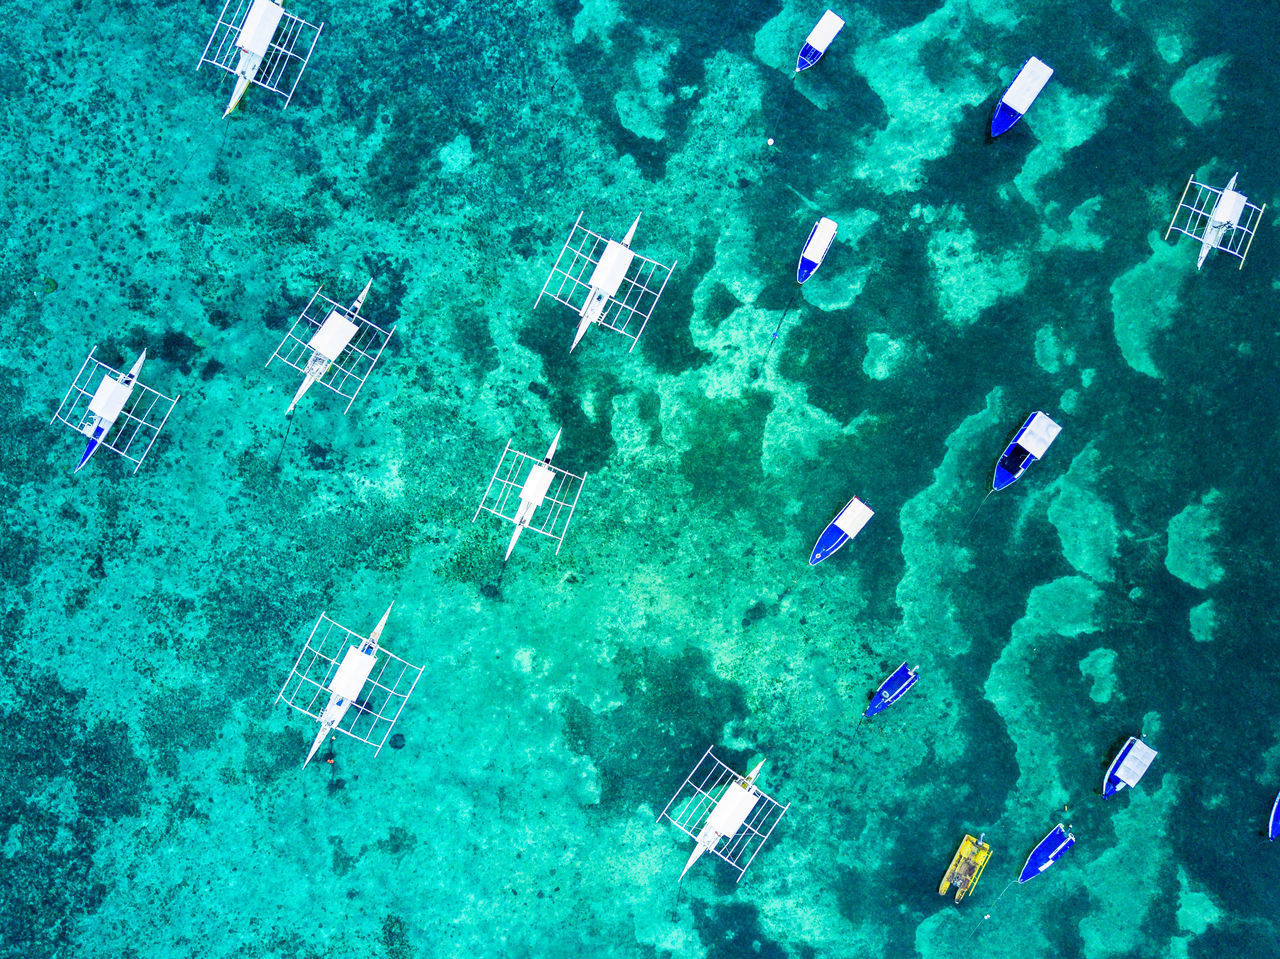 aerial boat Colors coralreef Drone dronephotography Eyeem Philippines Philippines reef